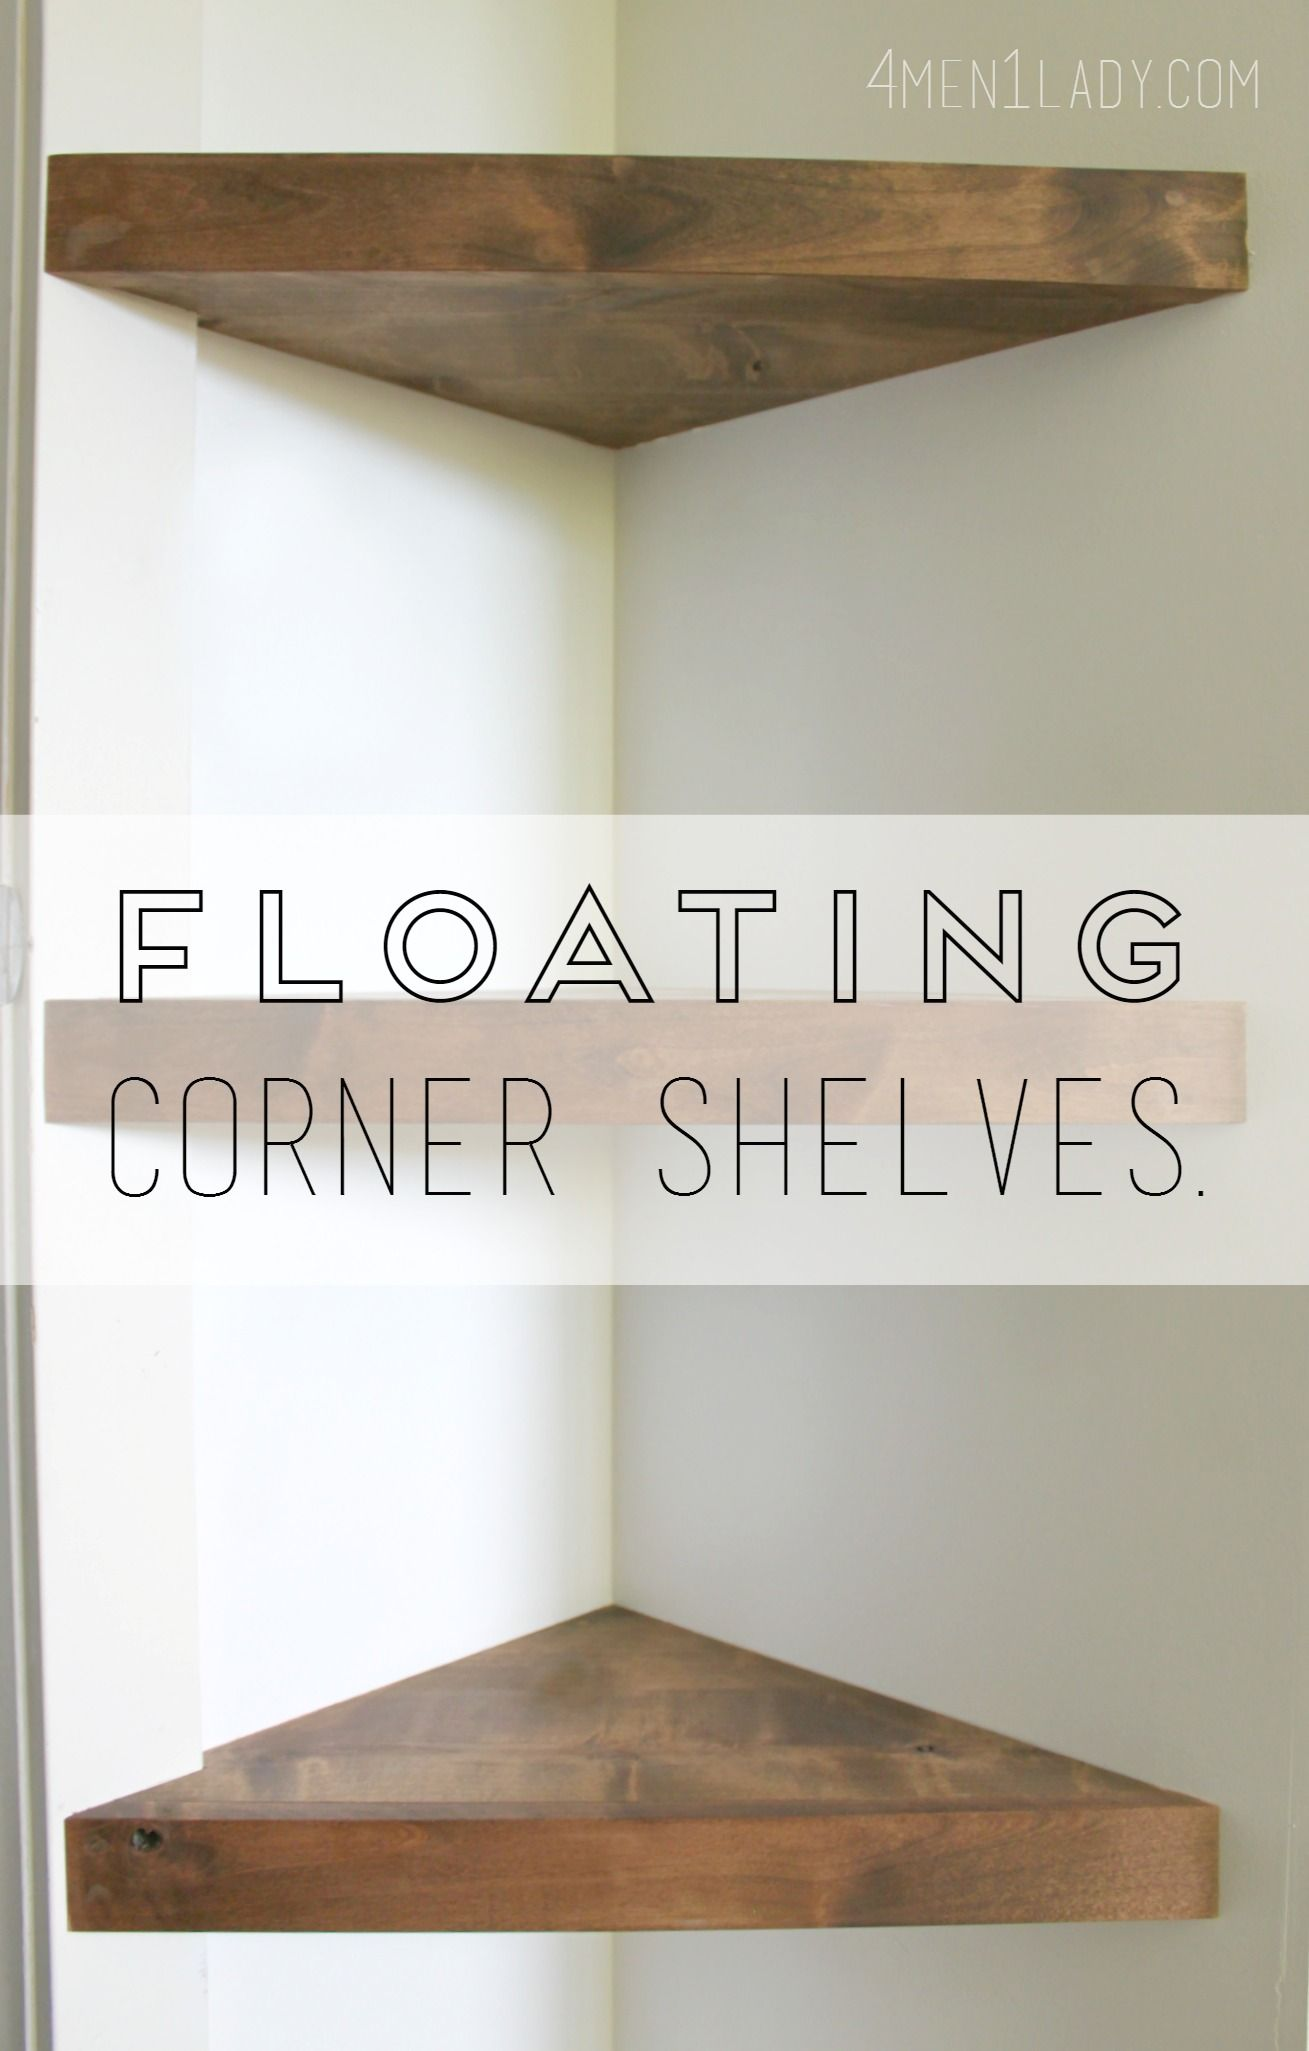 brilliantly creative diy shelving ideas apartment fixes unfinished floating corner shelf img shelves kitchen bedroom rustic ikea shoe box plastic espresso brown open cabinets